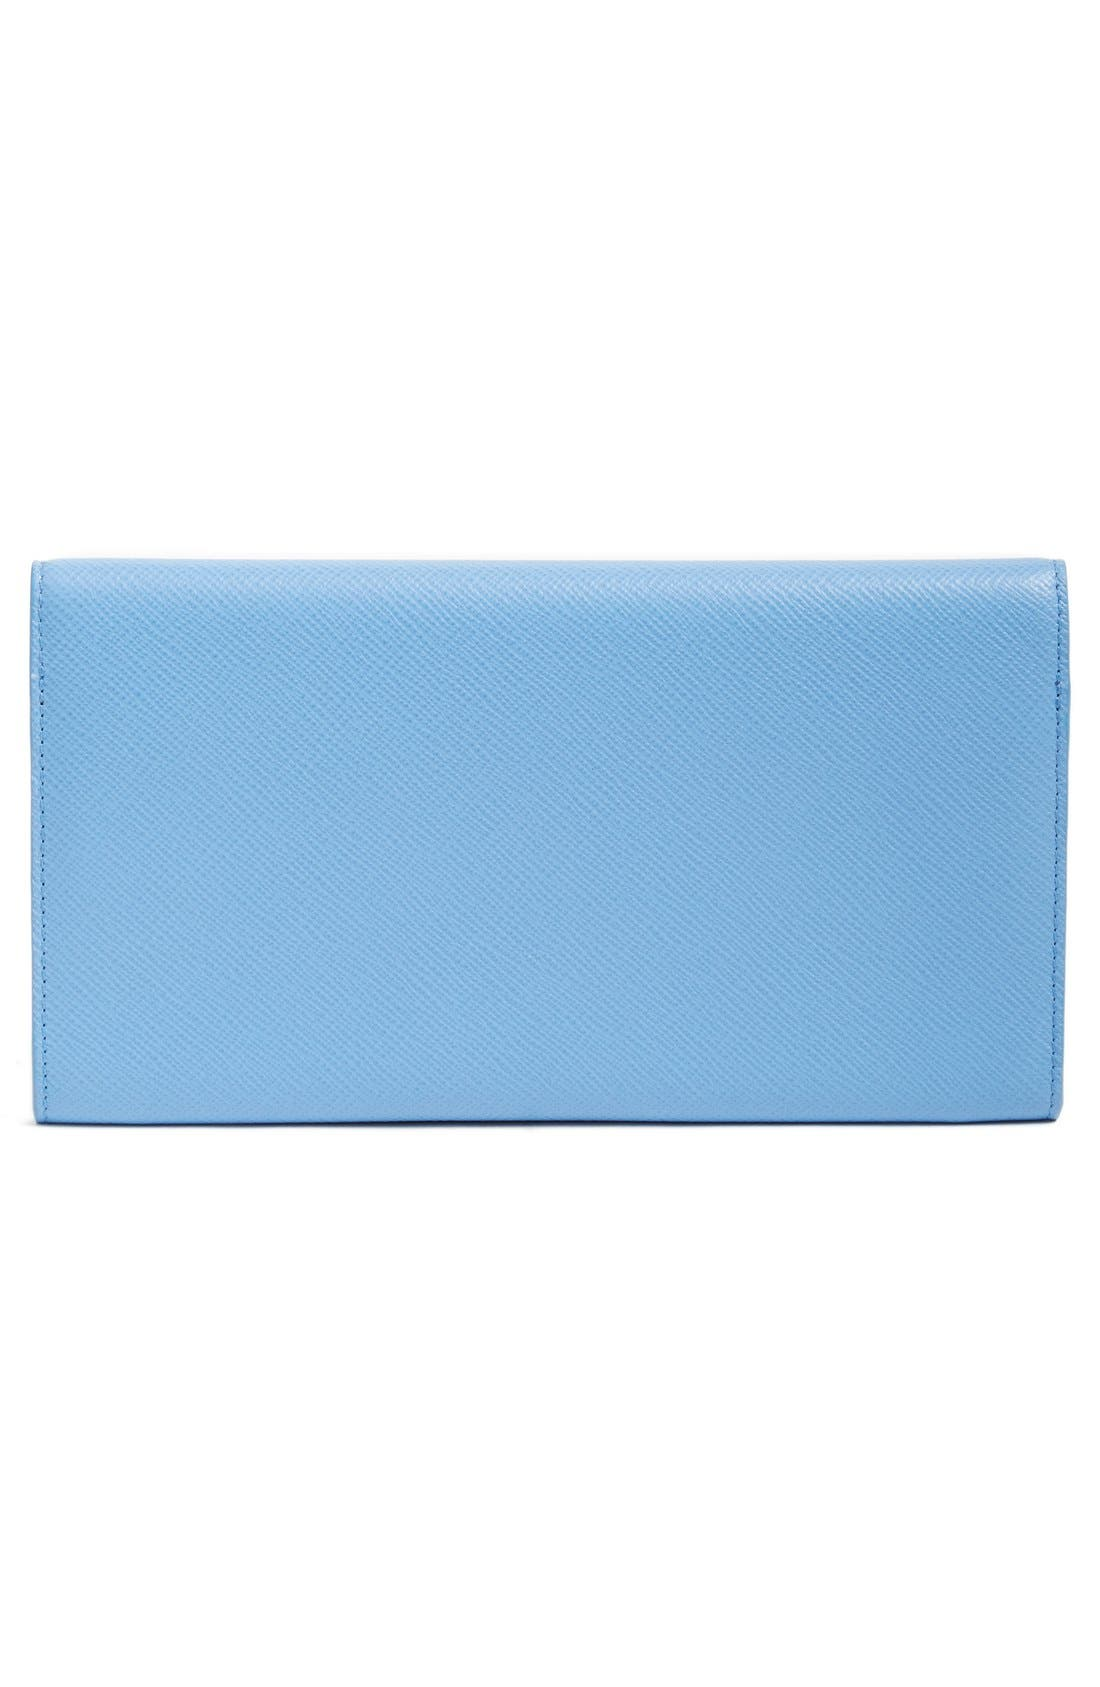 'Panama Marshall' Travel Wallet,                             Alternate thumbnail 4, color,                             NILE BLUE